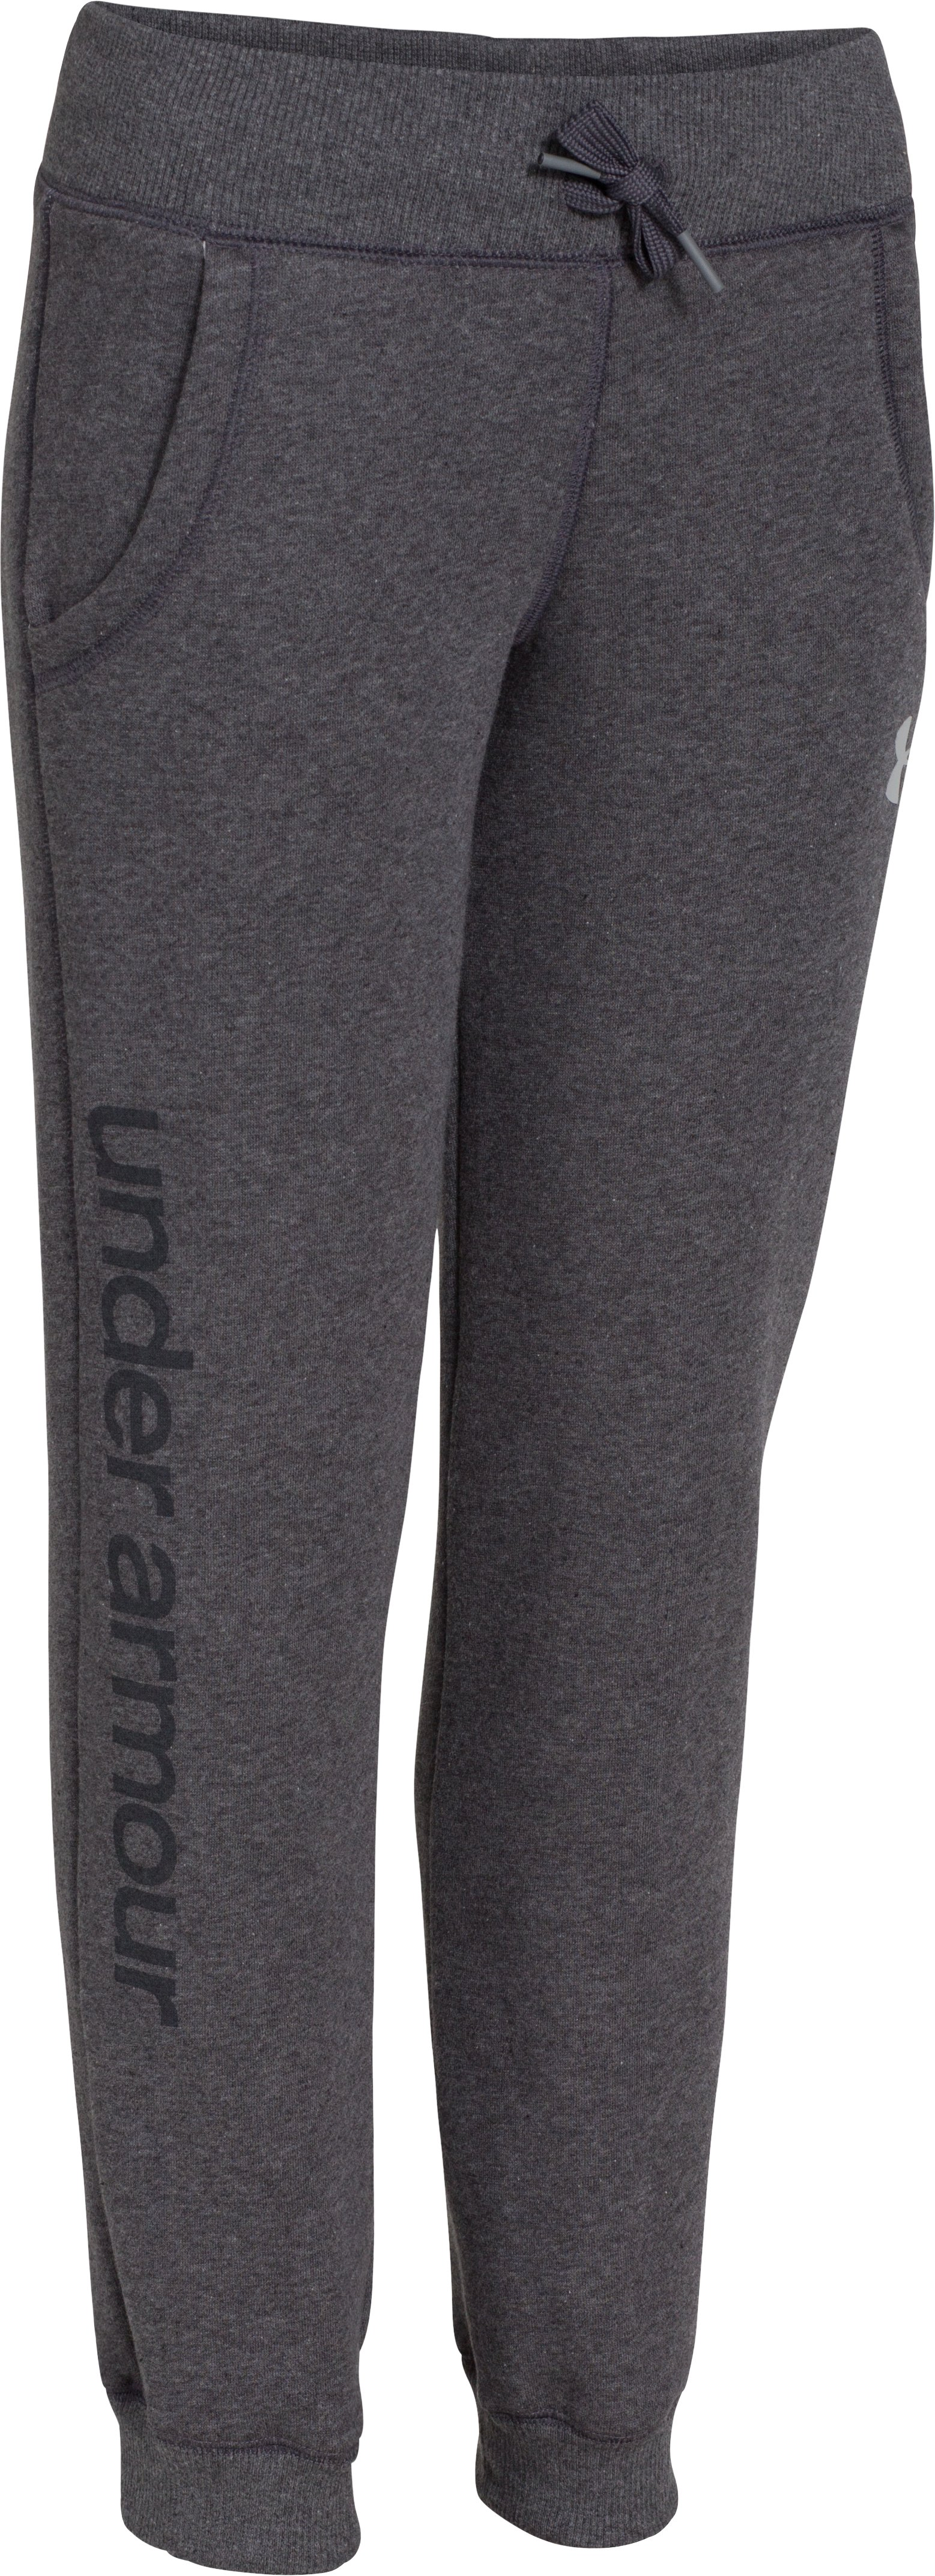 Girls' UA Hype Cotton Pant, Carbon Heather, zoomed image